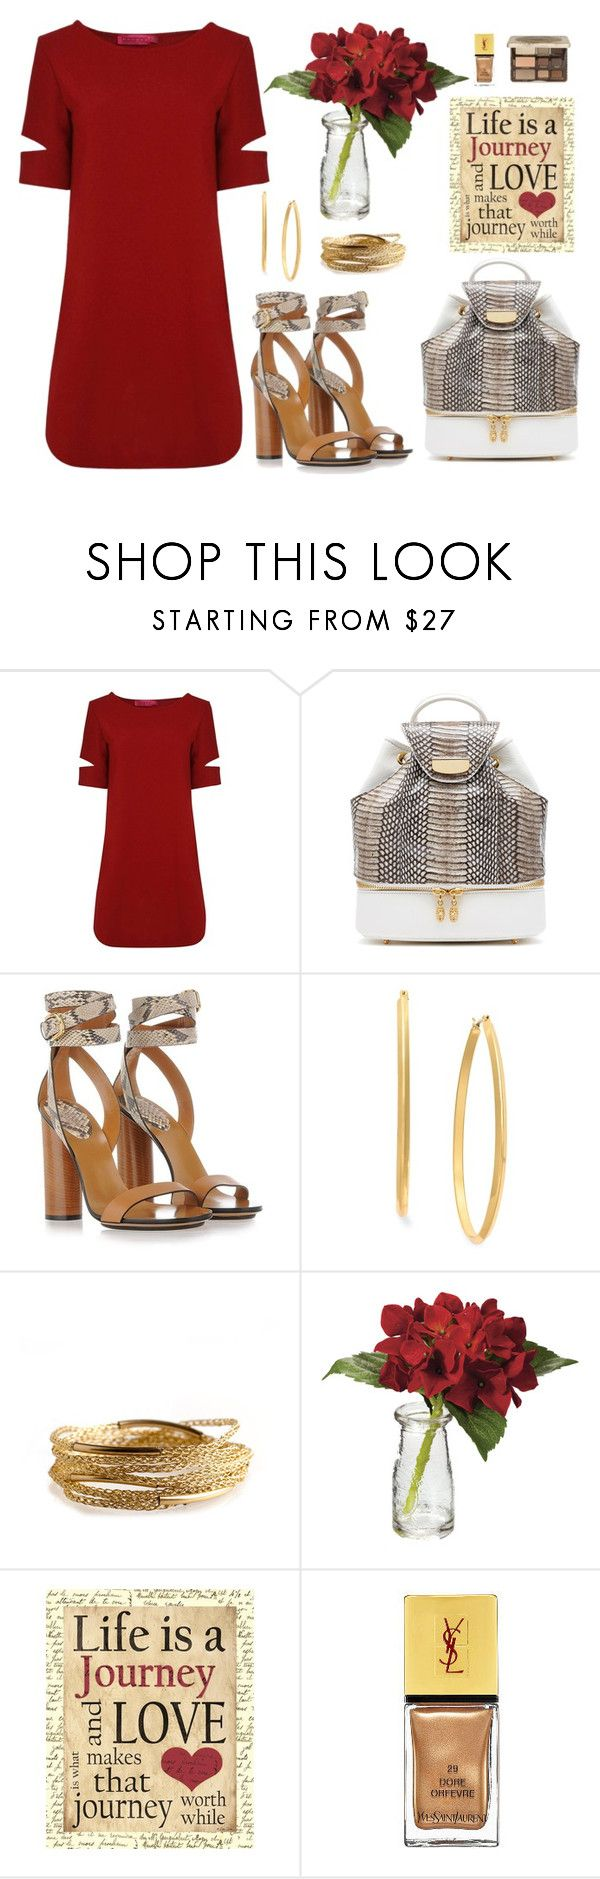 """""""Life is..."""" by sheavschaaf ❤ liked on Polyvore featuring Boohoo, Tyler Alexandra, Gucci, Charter Club, YooLa, DutchCrafters, Yves Saint Laurent and Too Faced Cosmetics"""